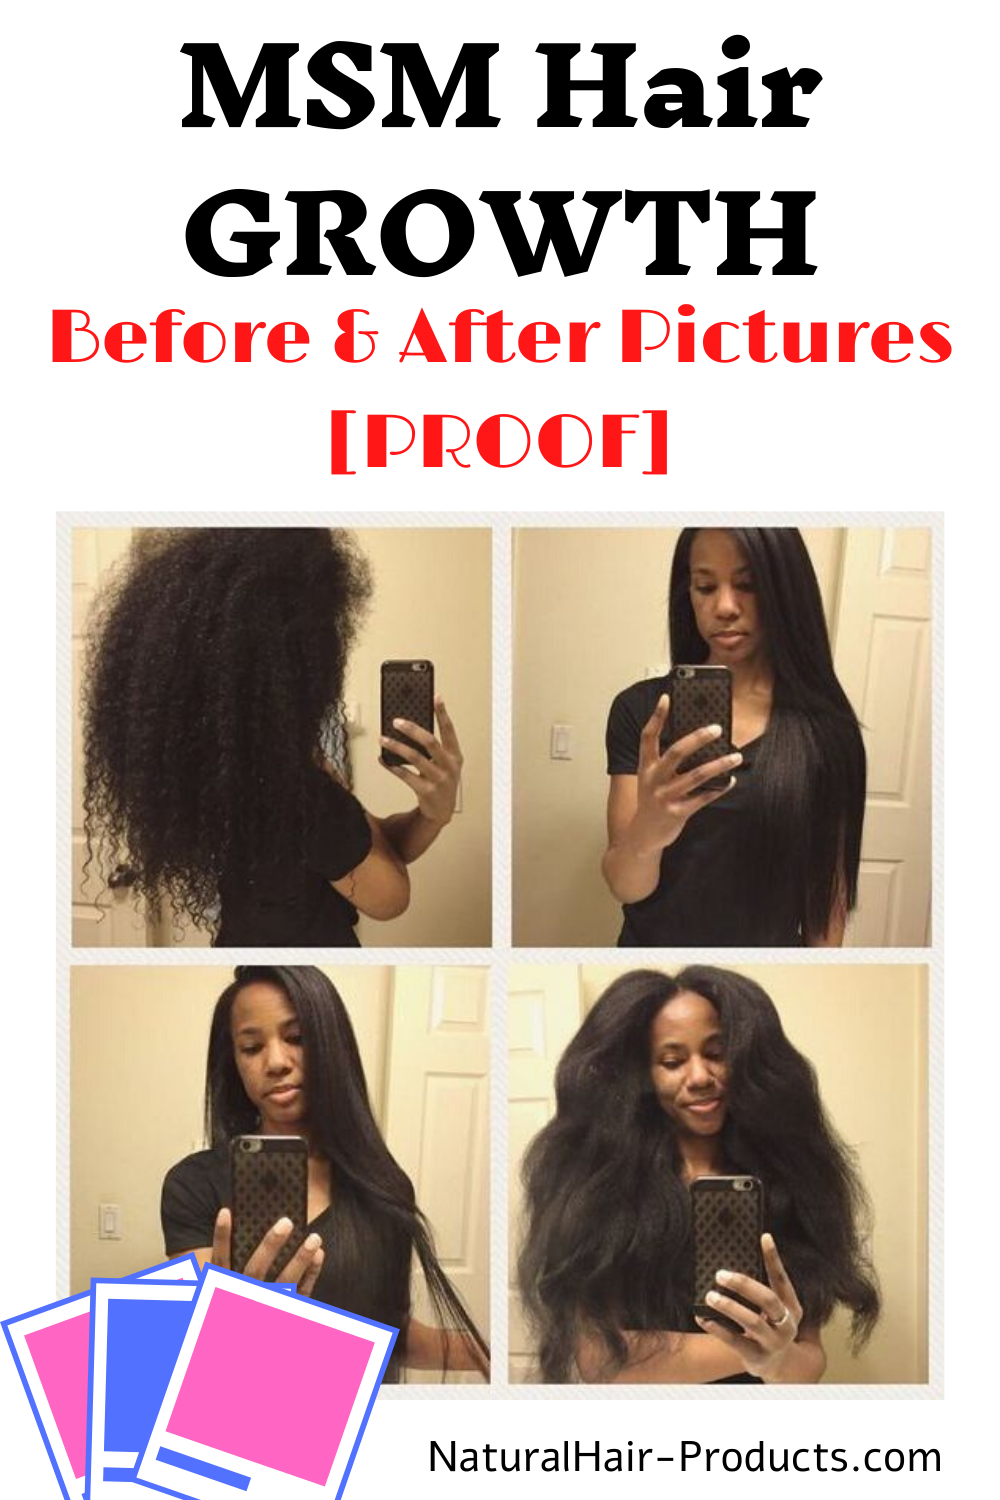 See More Msm Hair Growth Before And After Pictures Proof In 2020 Msm Hair Growth Natural Hair Growth Natural Hair Styles